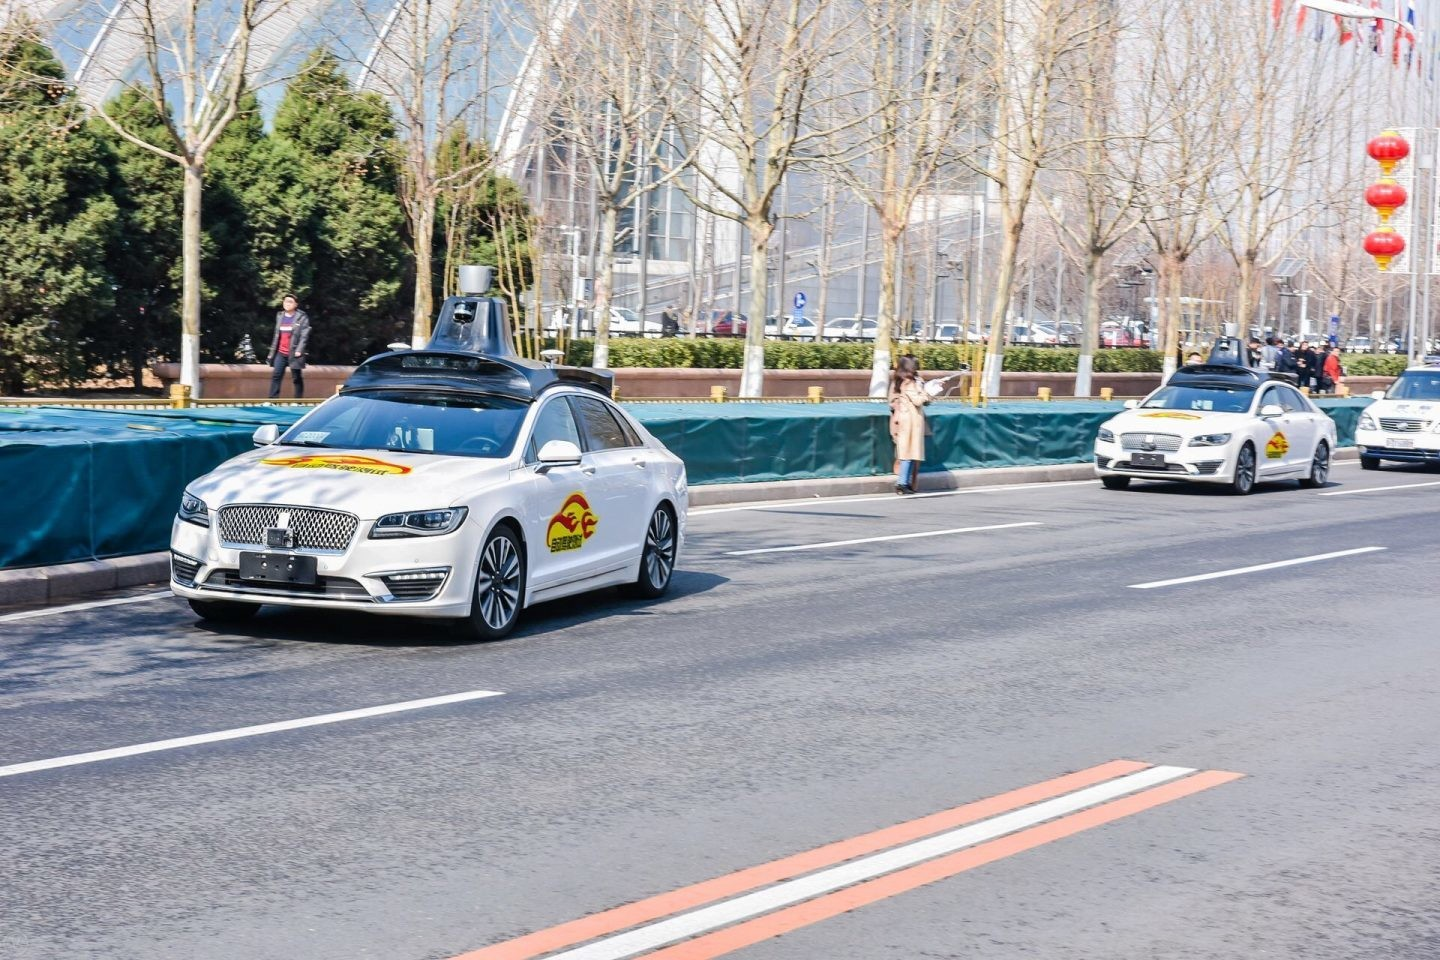 Baidu's driverless cars being tested.